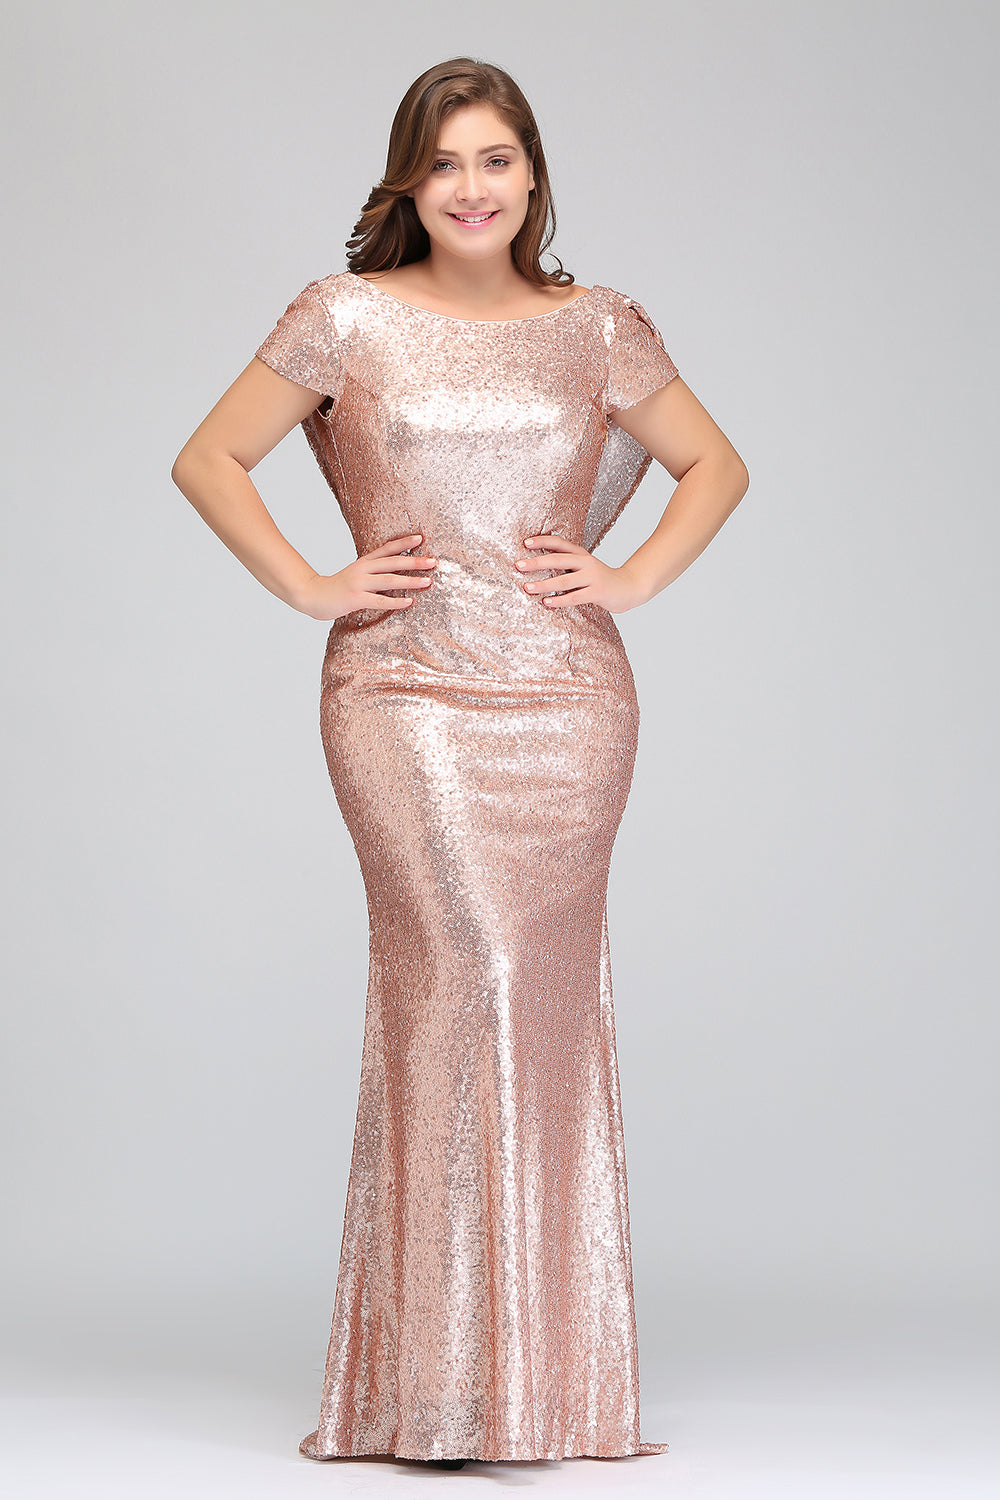 08dcc26274dc9 Rose Gold Short Sleeves Plus Size Bridesmaid Dresses